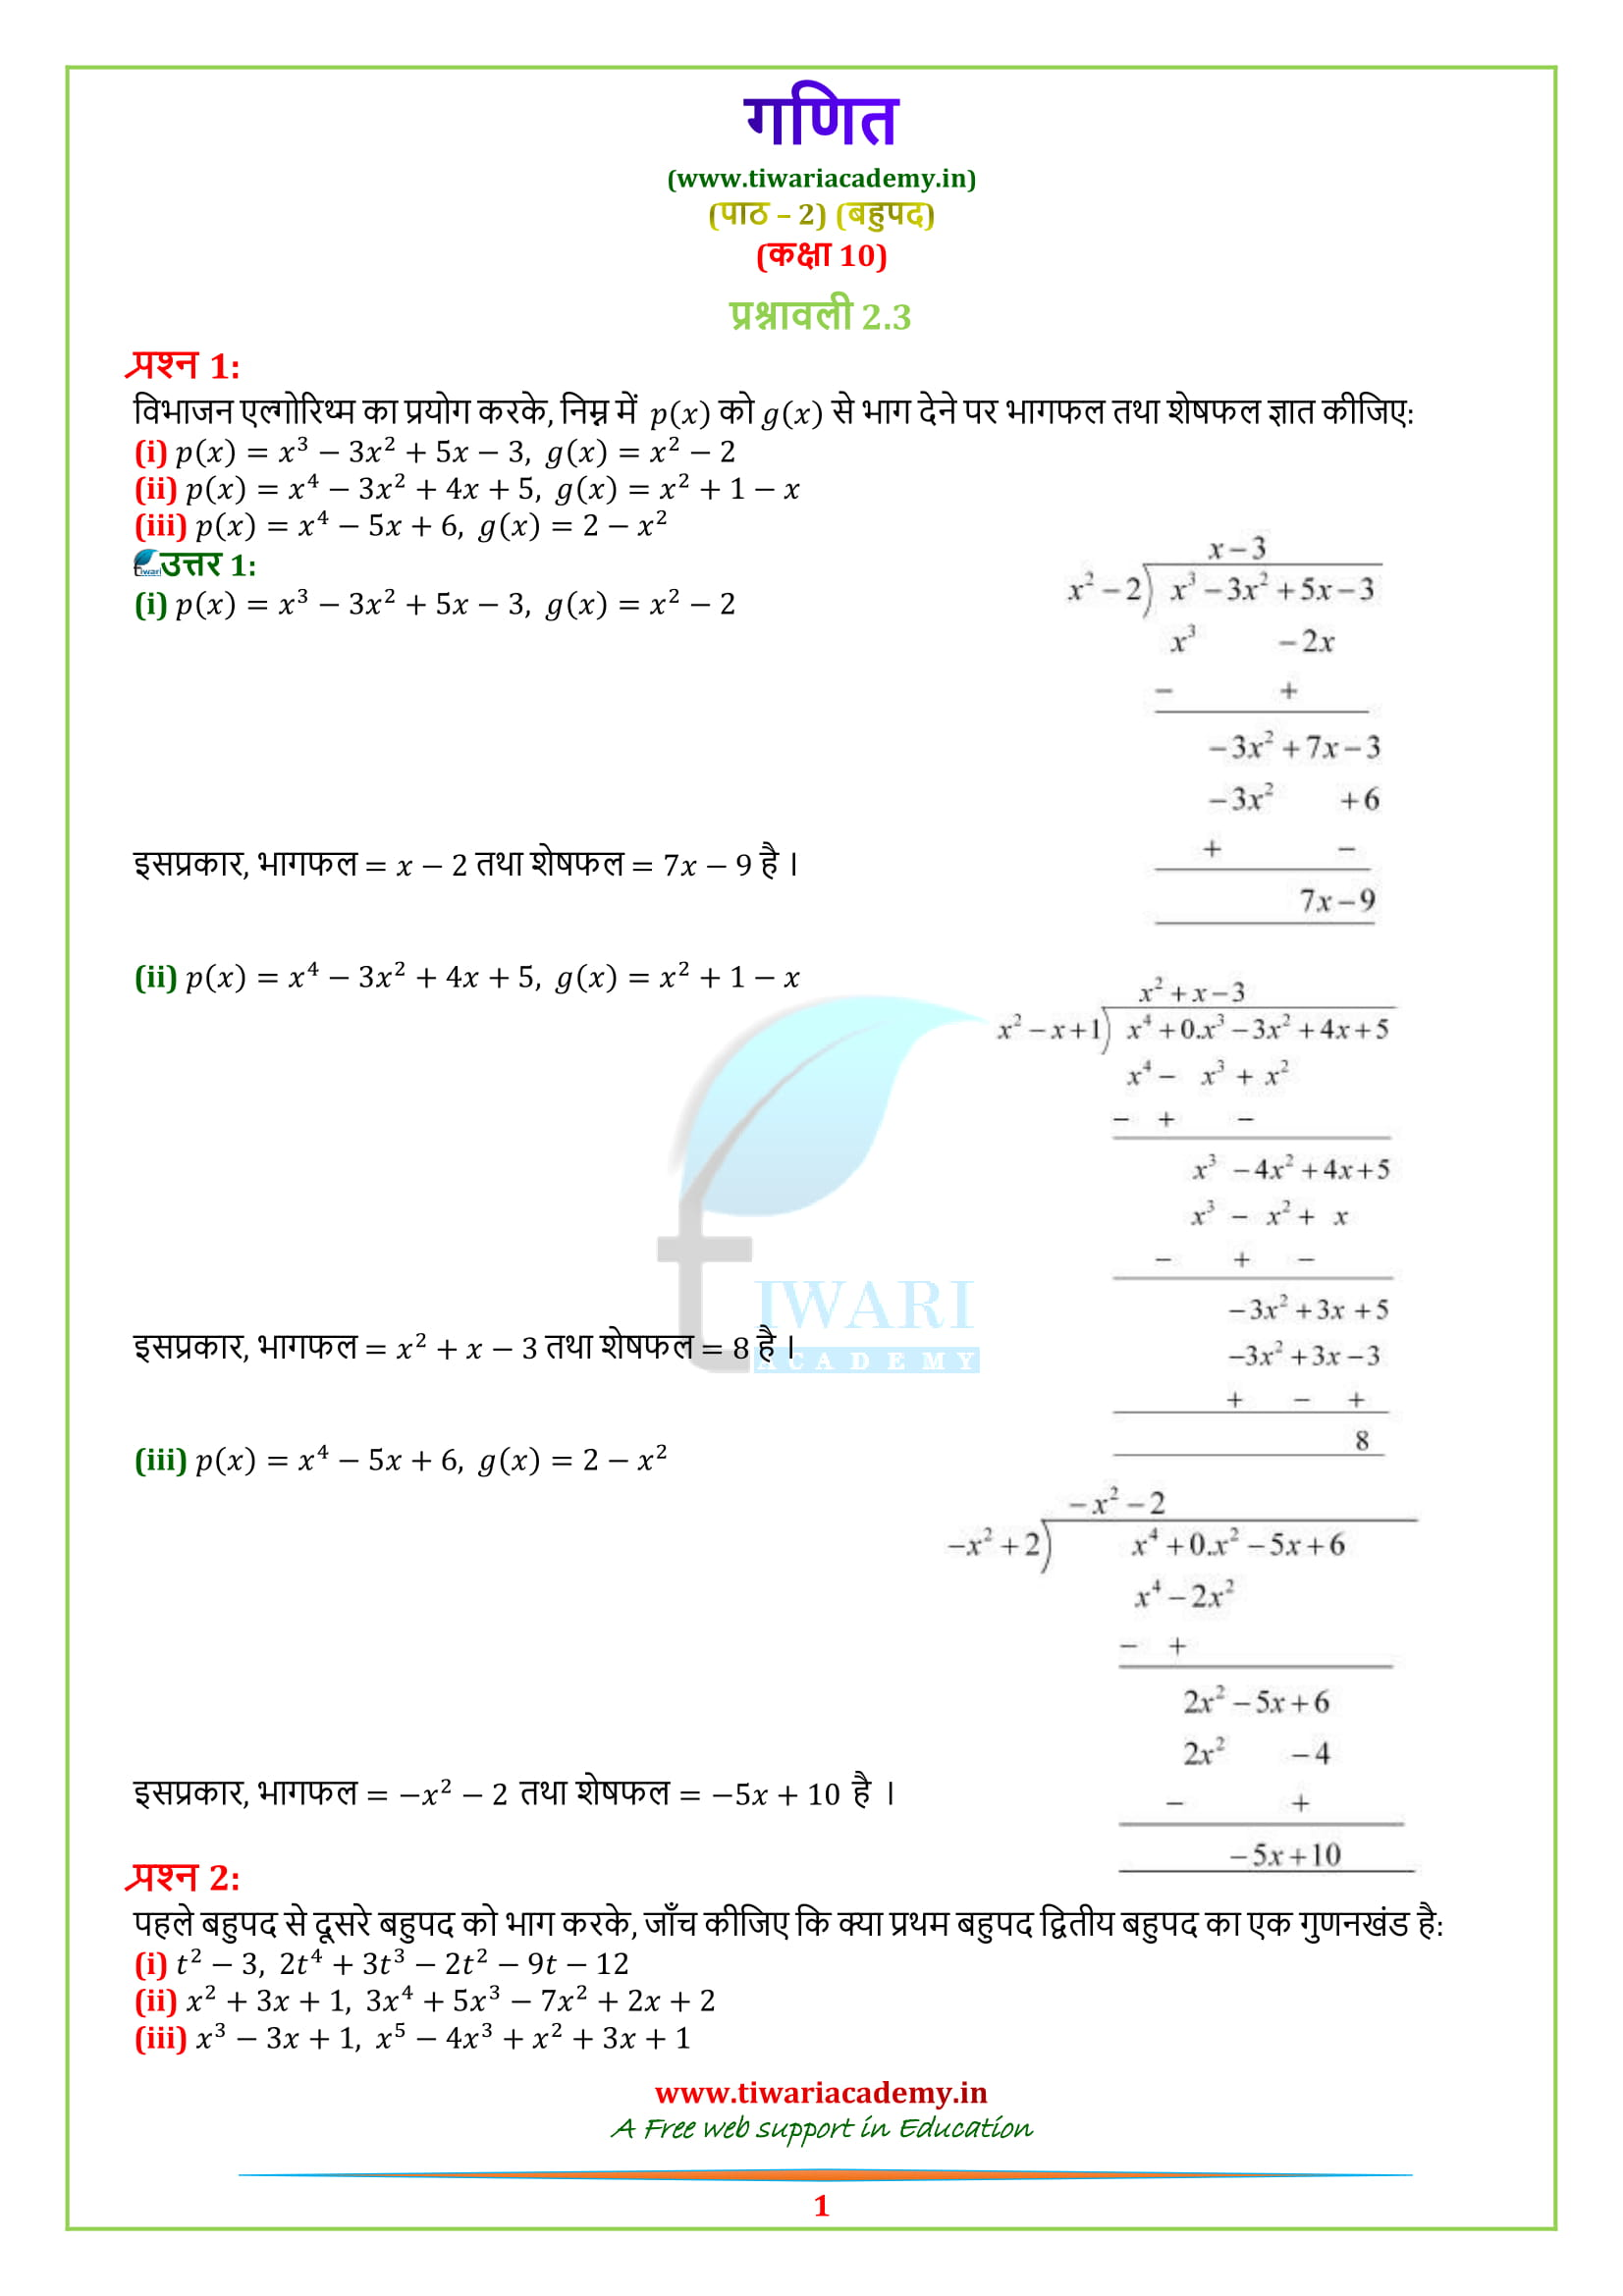 10 Maths Exercise 2.3 in Hindi solutions question 1, 2, 3, 4, 5